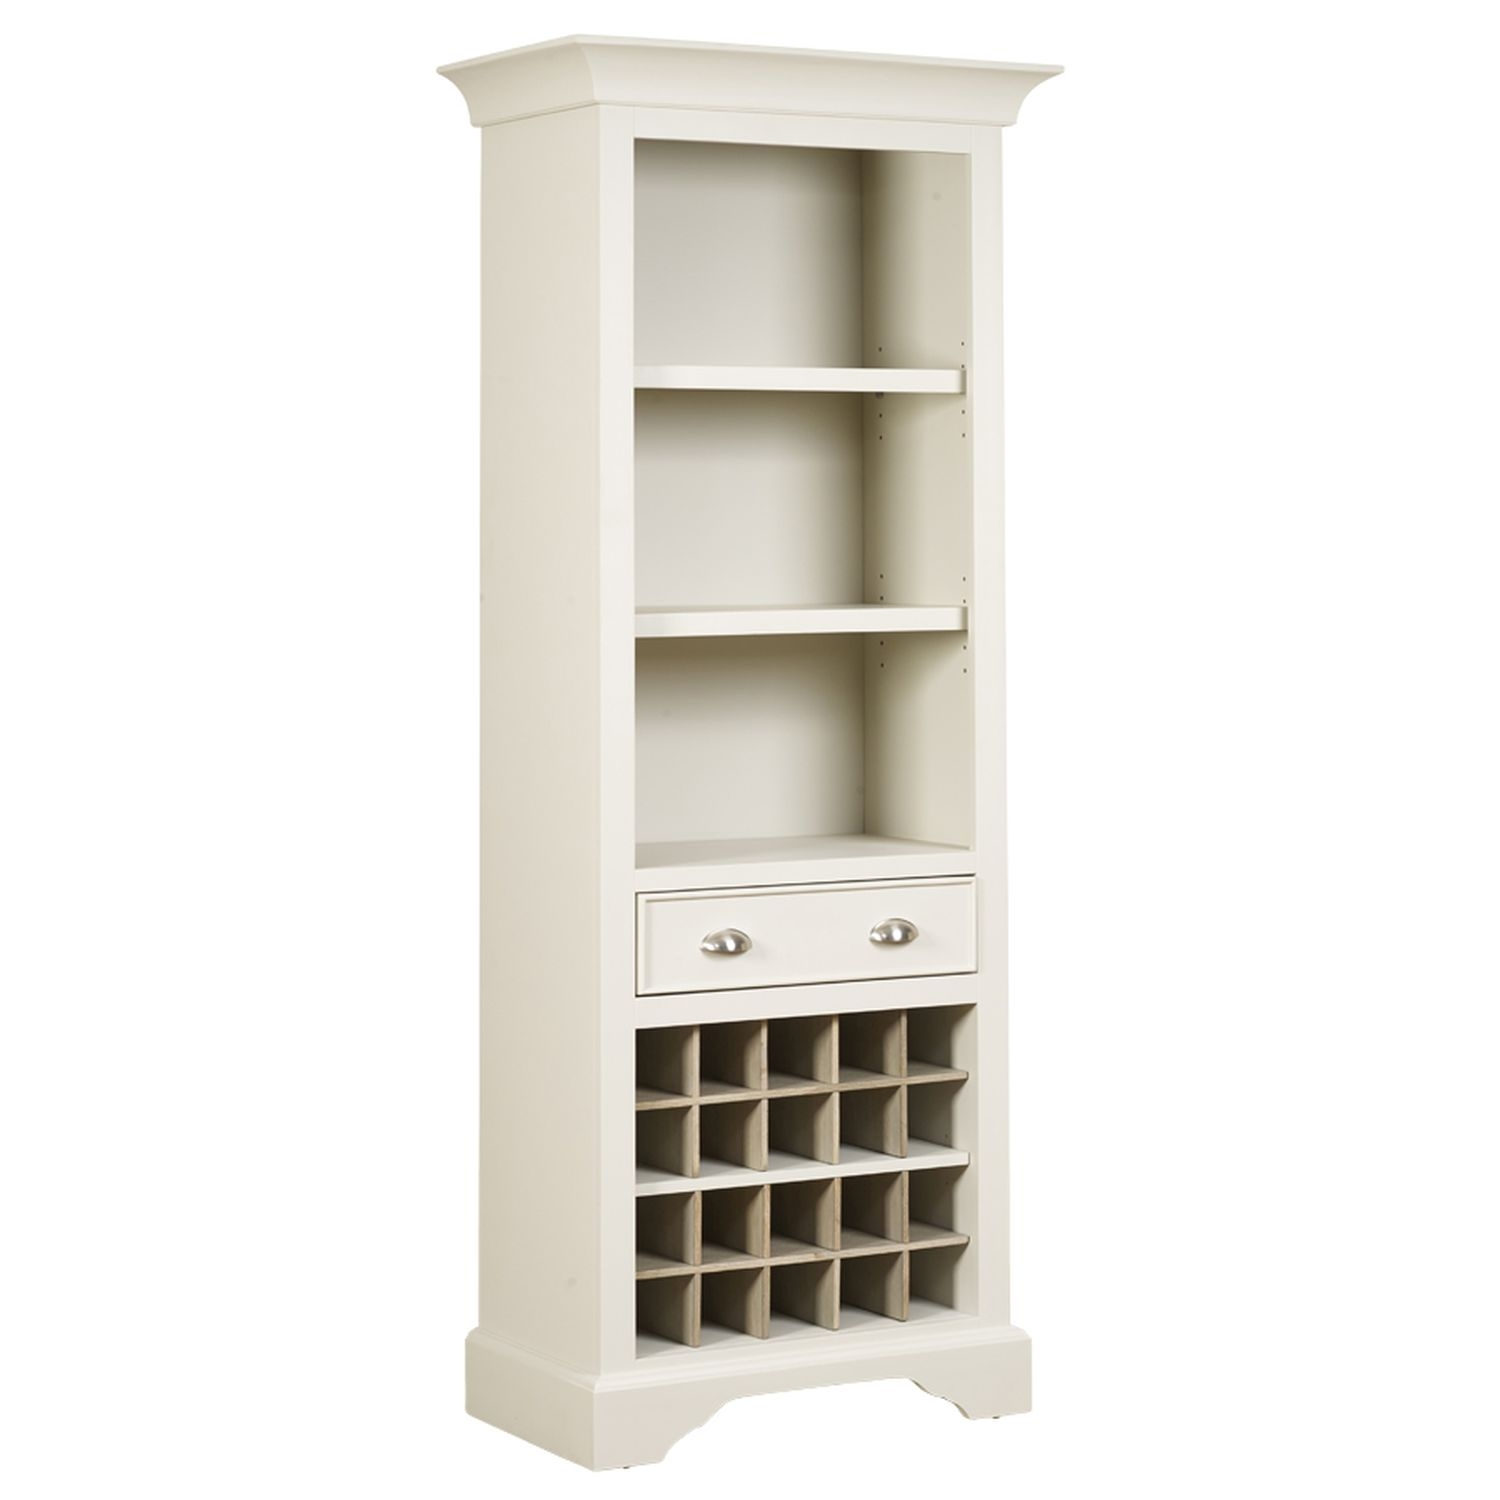 Image of Casa Lille Tall Wine Rack